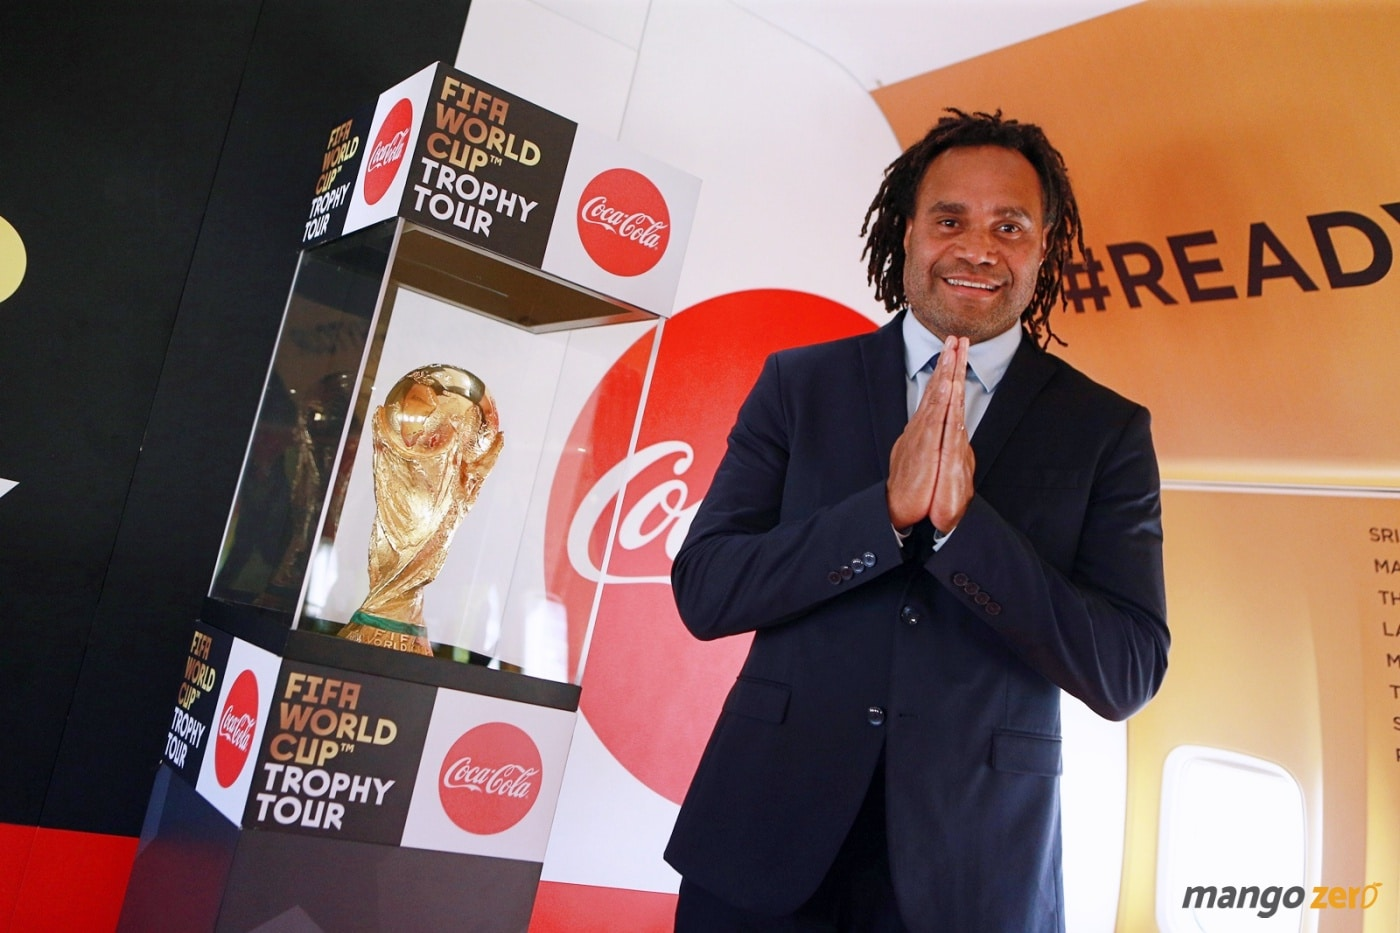 2018-fifa-world-cup-trophy-tour-by-coca-cola-at-phuket-1